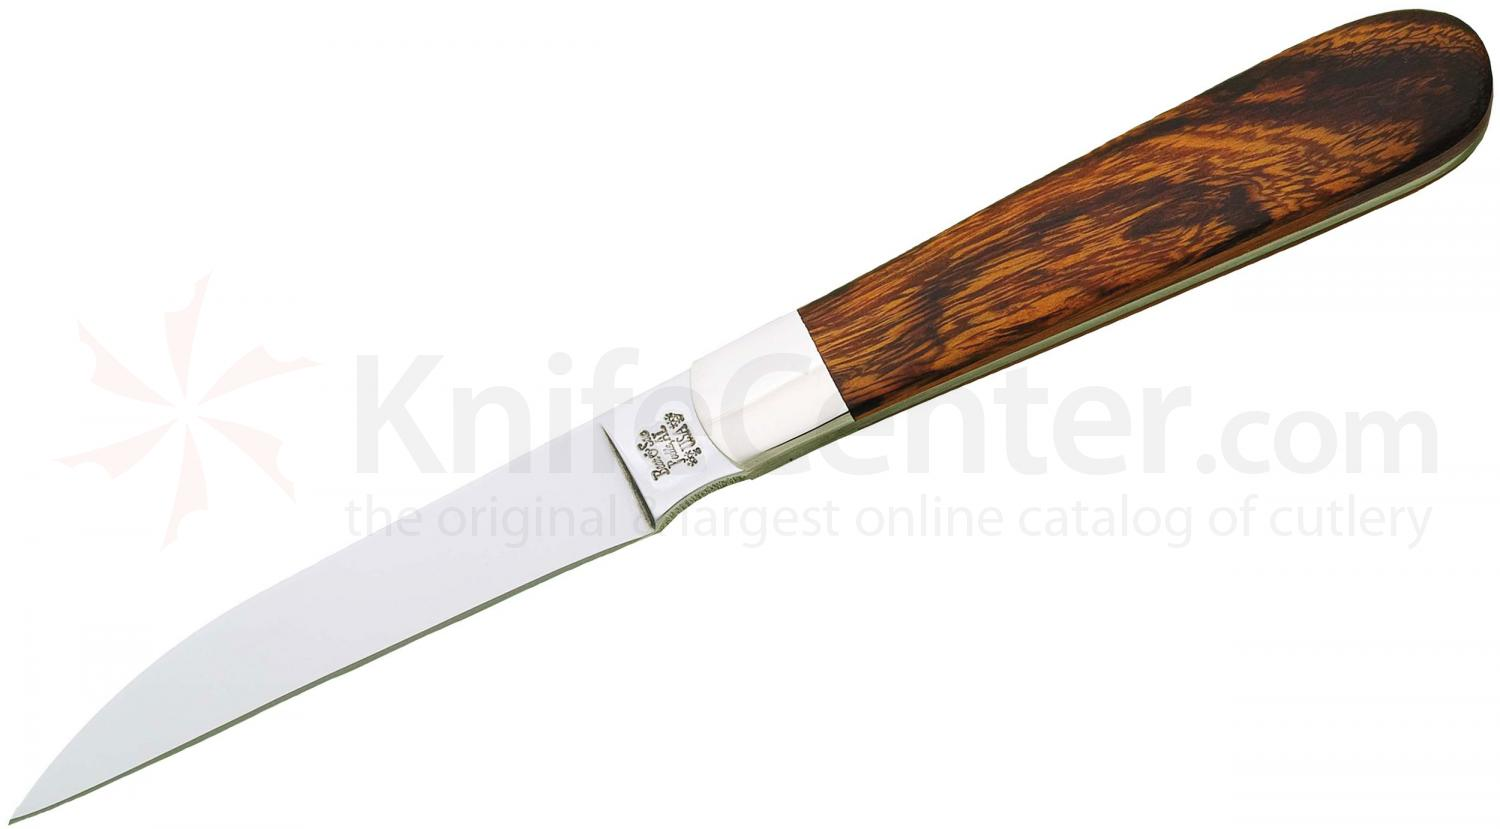 Bear & Son K2LOE Kodiak Series Letter Opener 3-1/8 inch Blade, Desert Ironwood Handles, Leather Desk Sheath